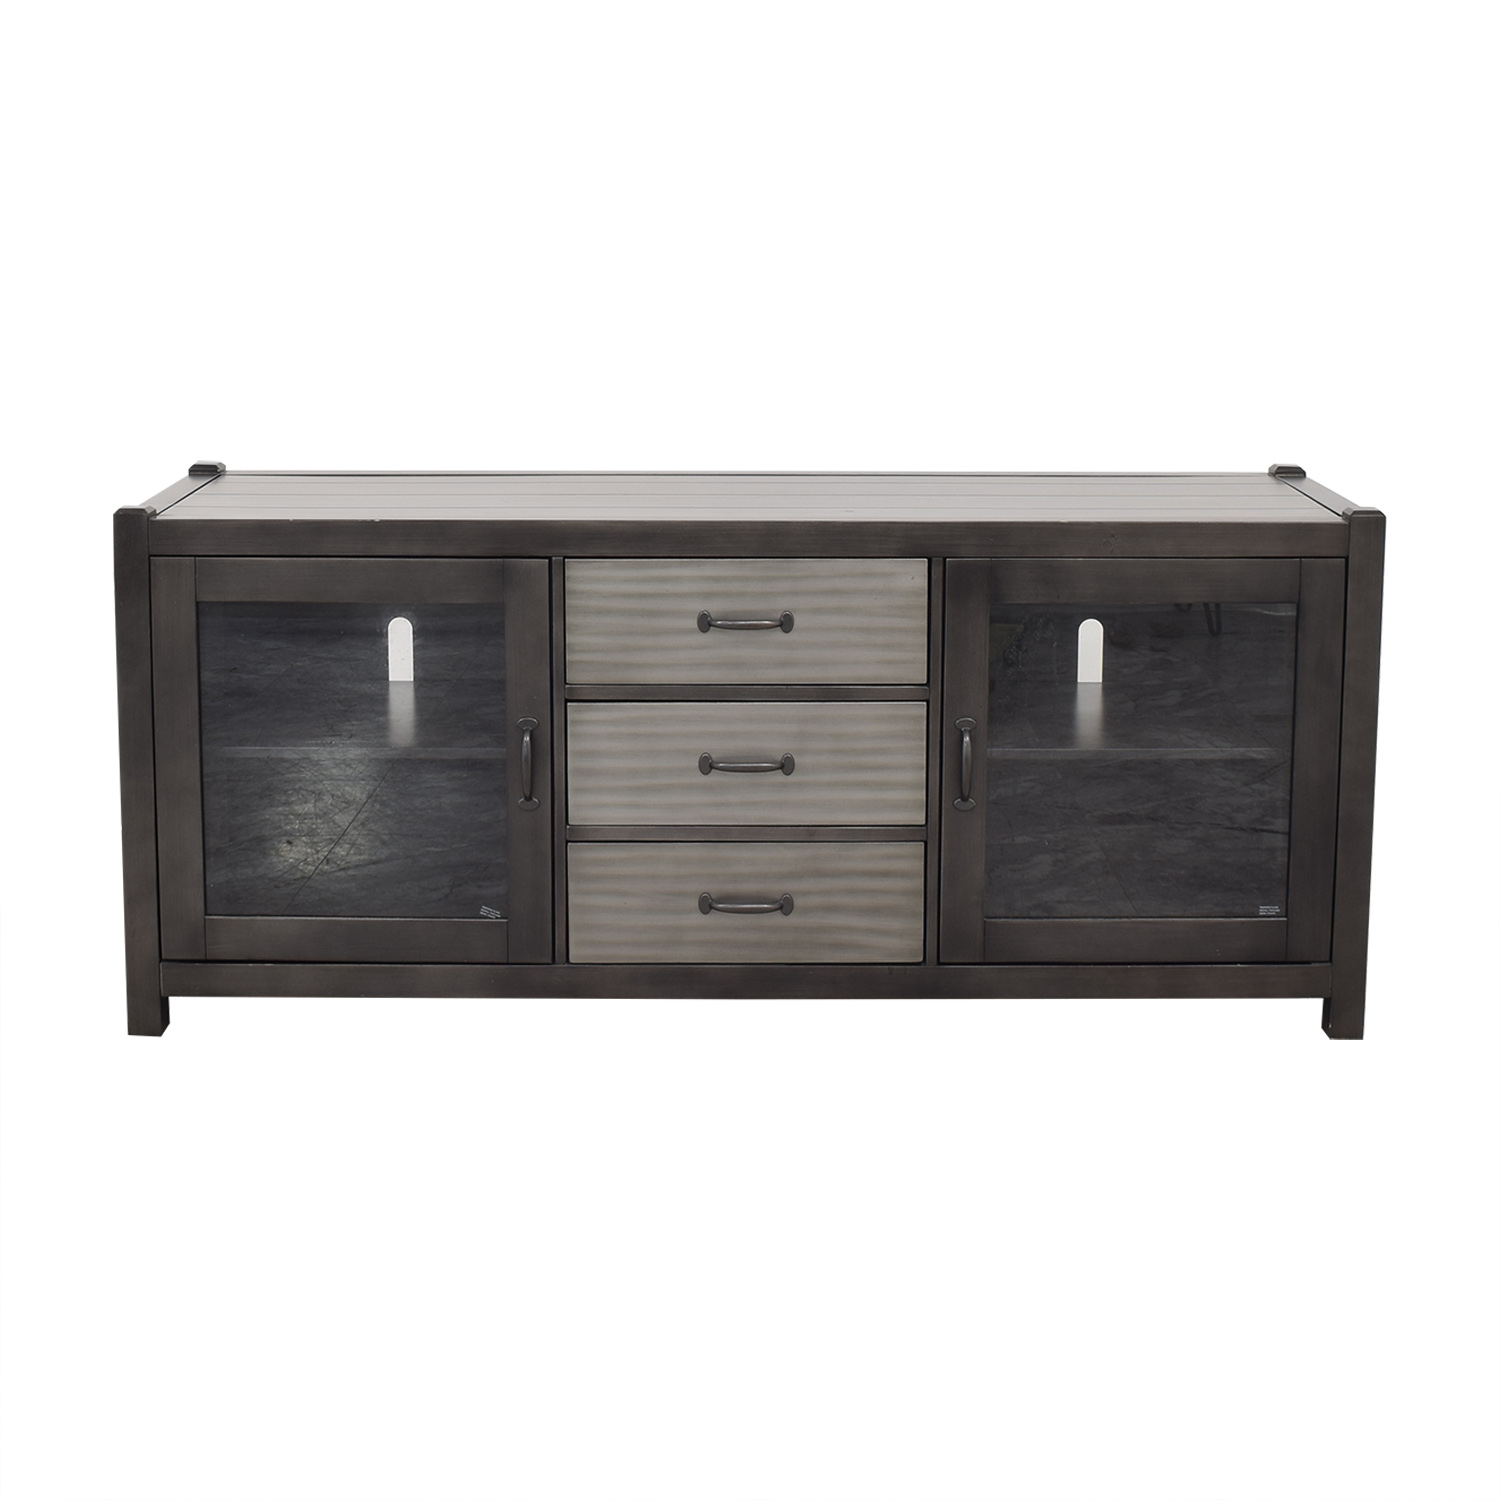 Raymour & Flanigan Raymour & Flanigan Axel TV Console on sale